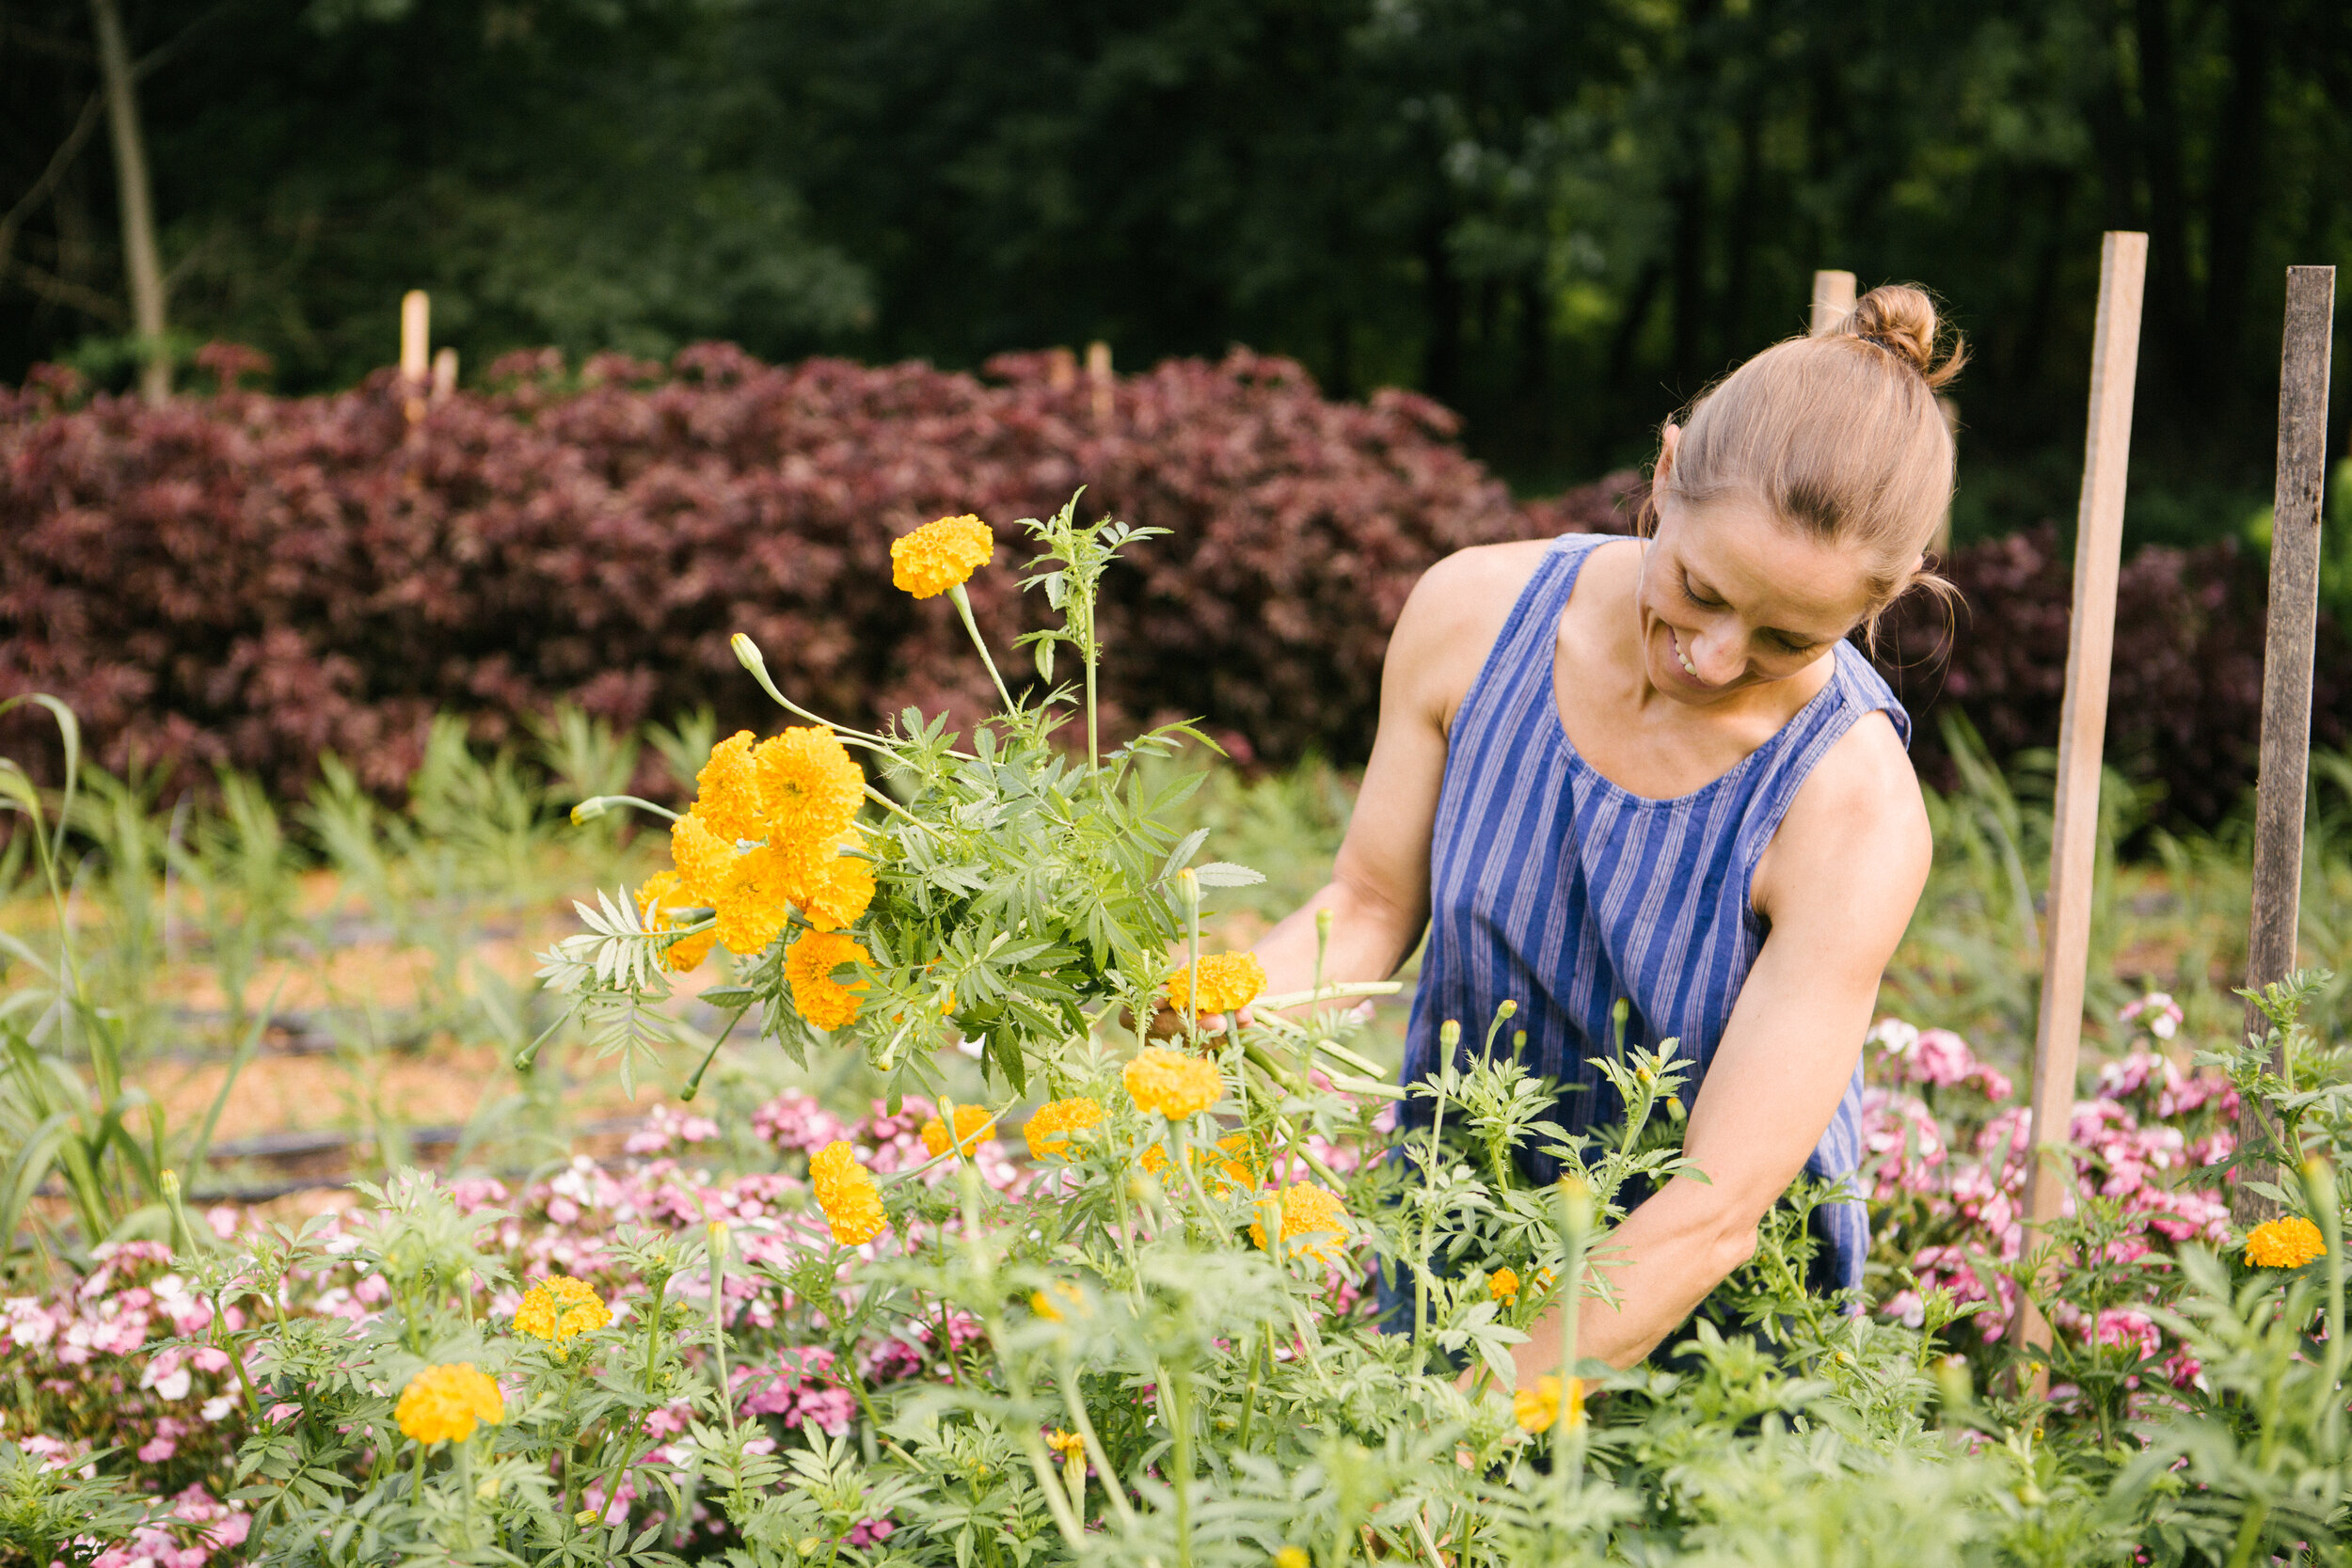 A photo from our July farm photoshoot by  Ann-Marie VanTassell . Elisa looks so happy here!